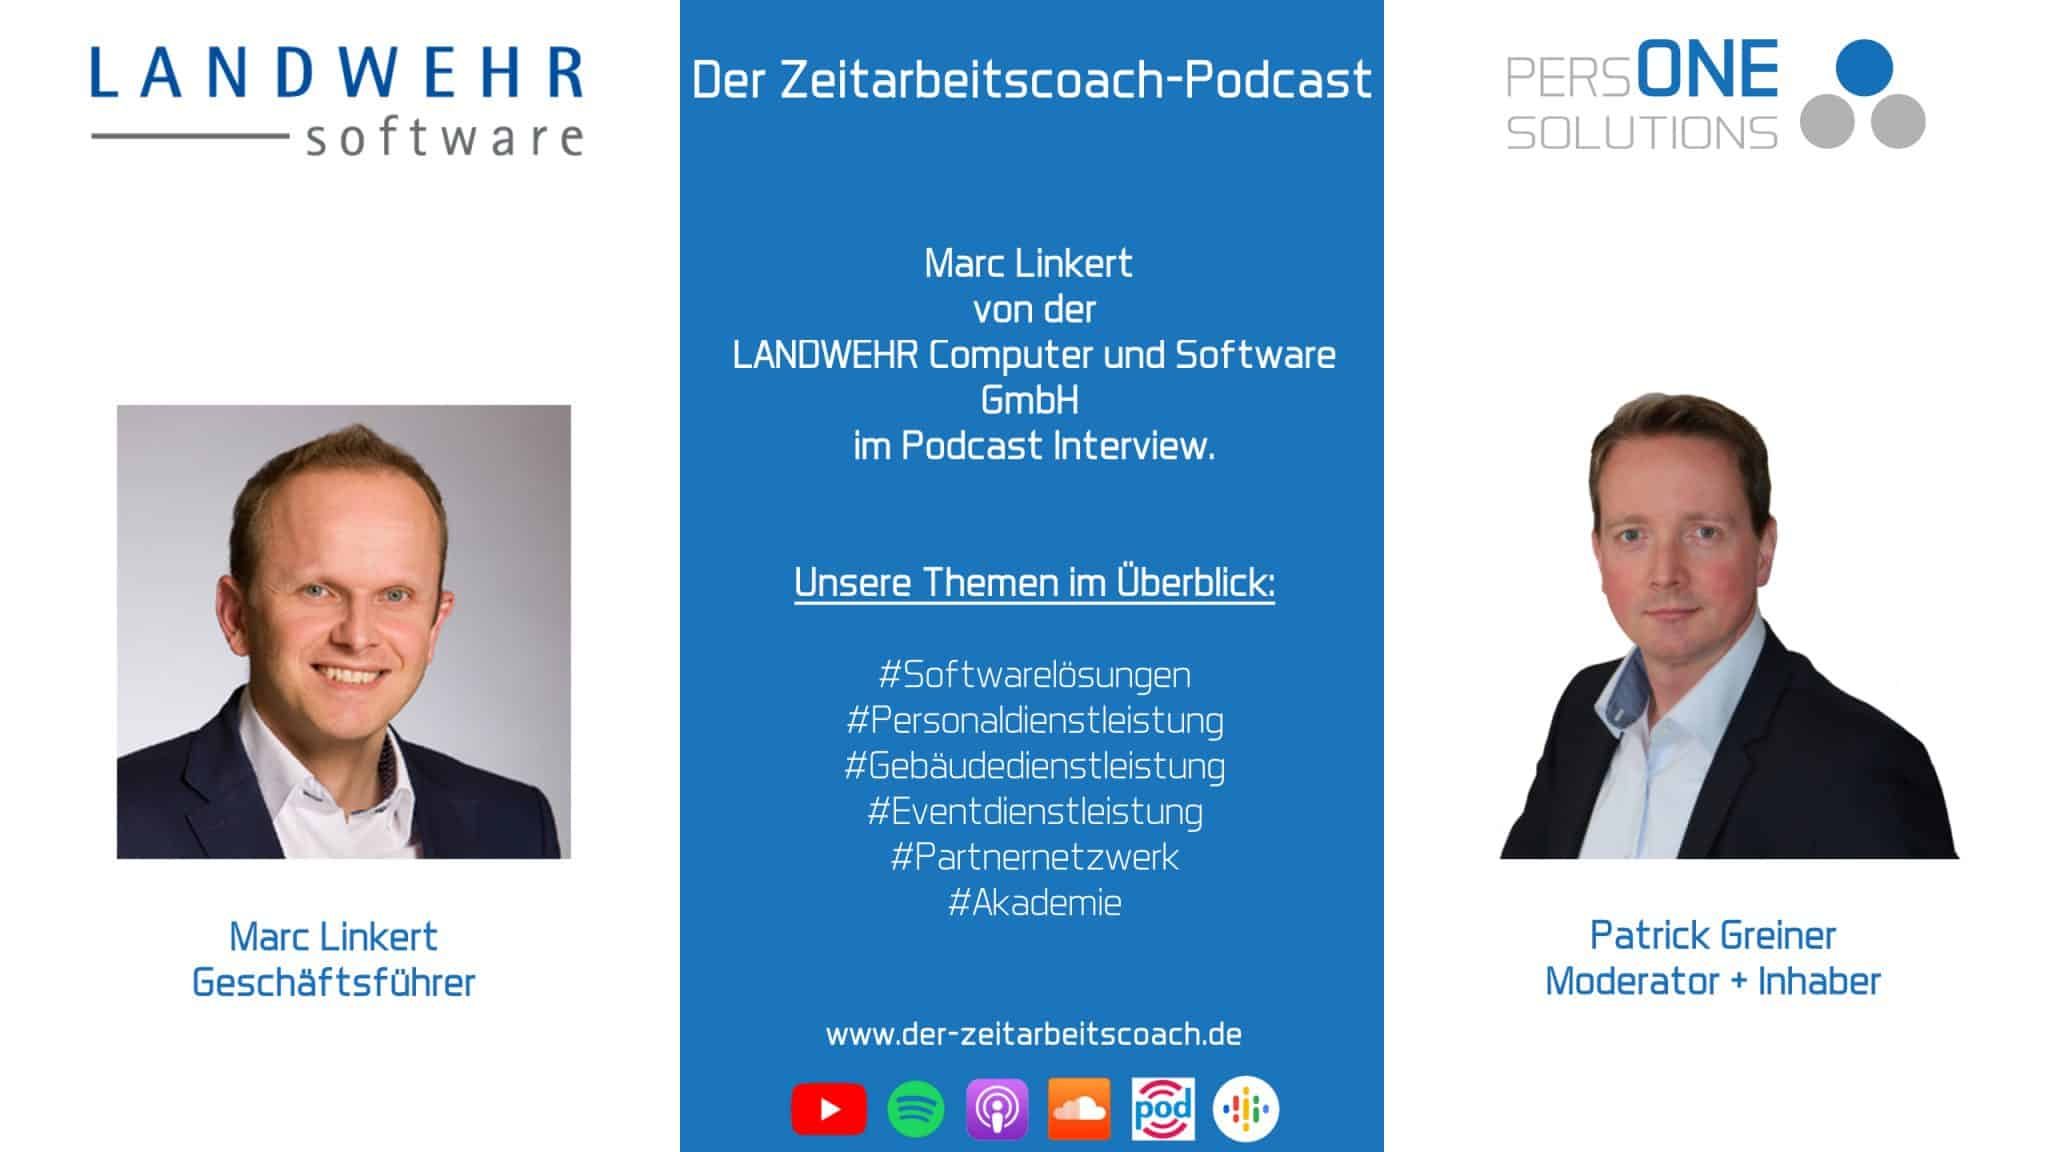 Linkert, Marc_Podcast Grafik-Interview YT_Zeitarbeitscoach-Podcast